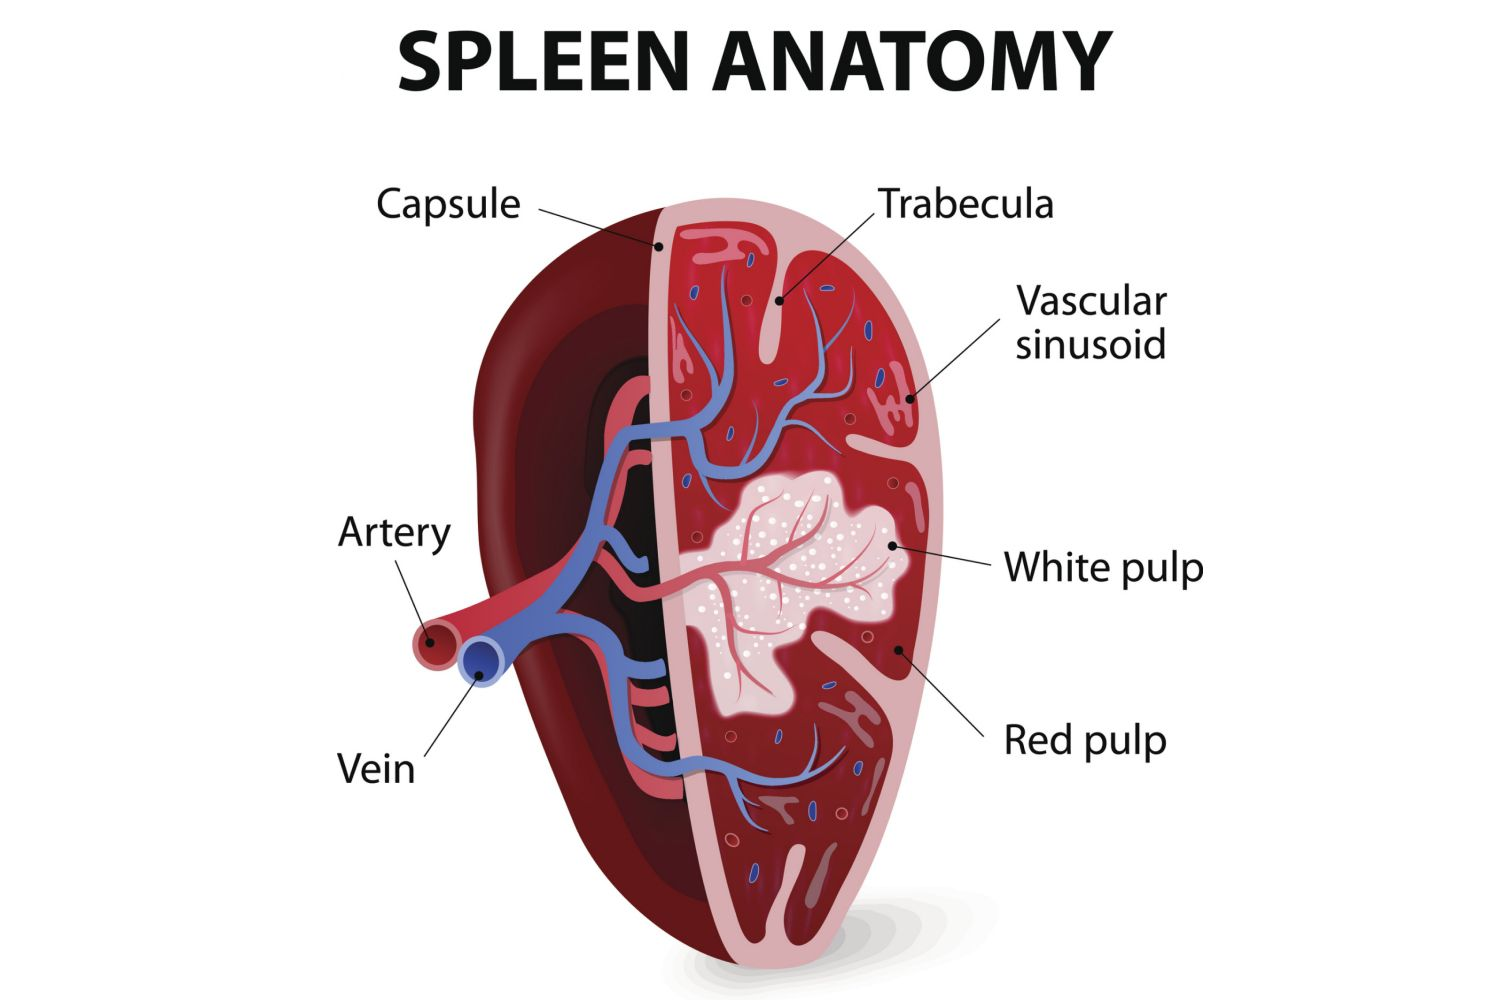 Spleen Anatomy And Function